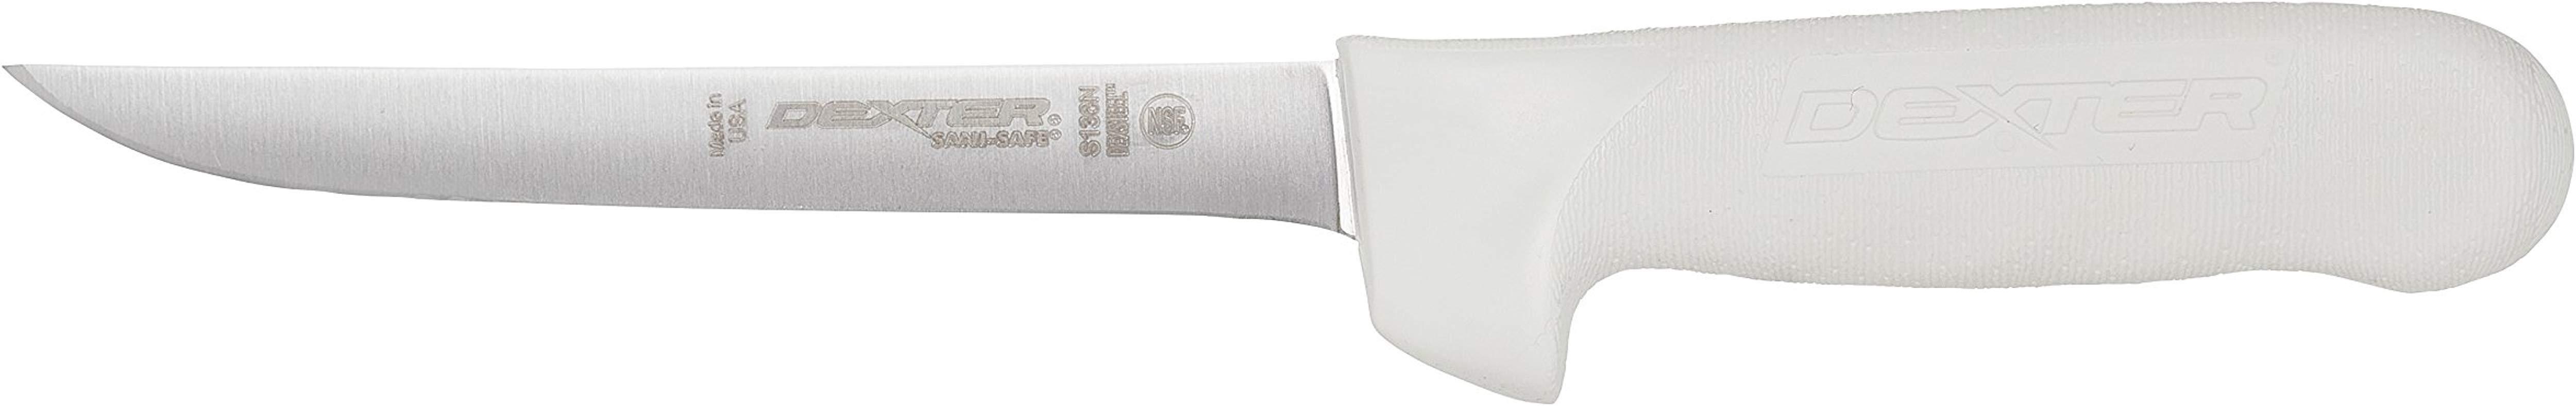 Dexter Russell Sani Safe Narrow Boning Knife Carbon Steel Blade 6 Inch